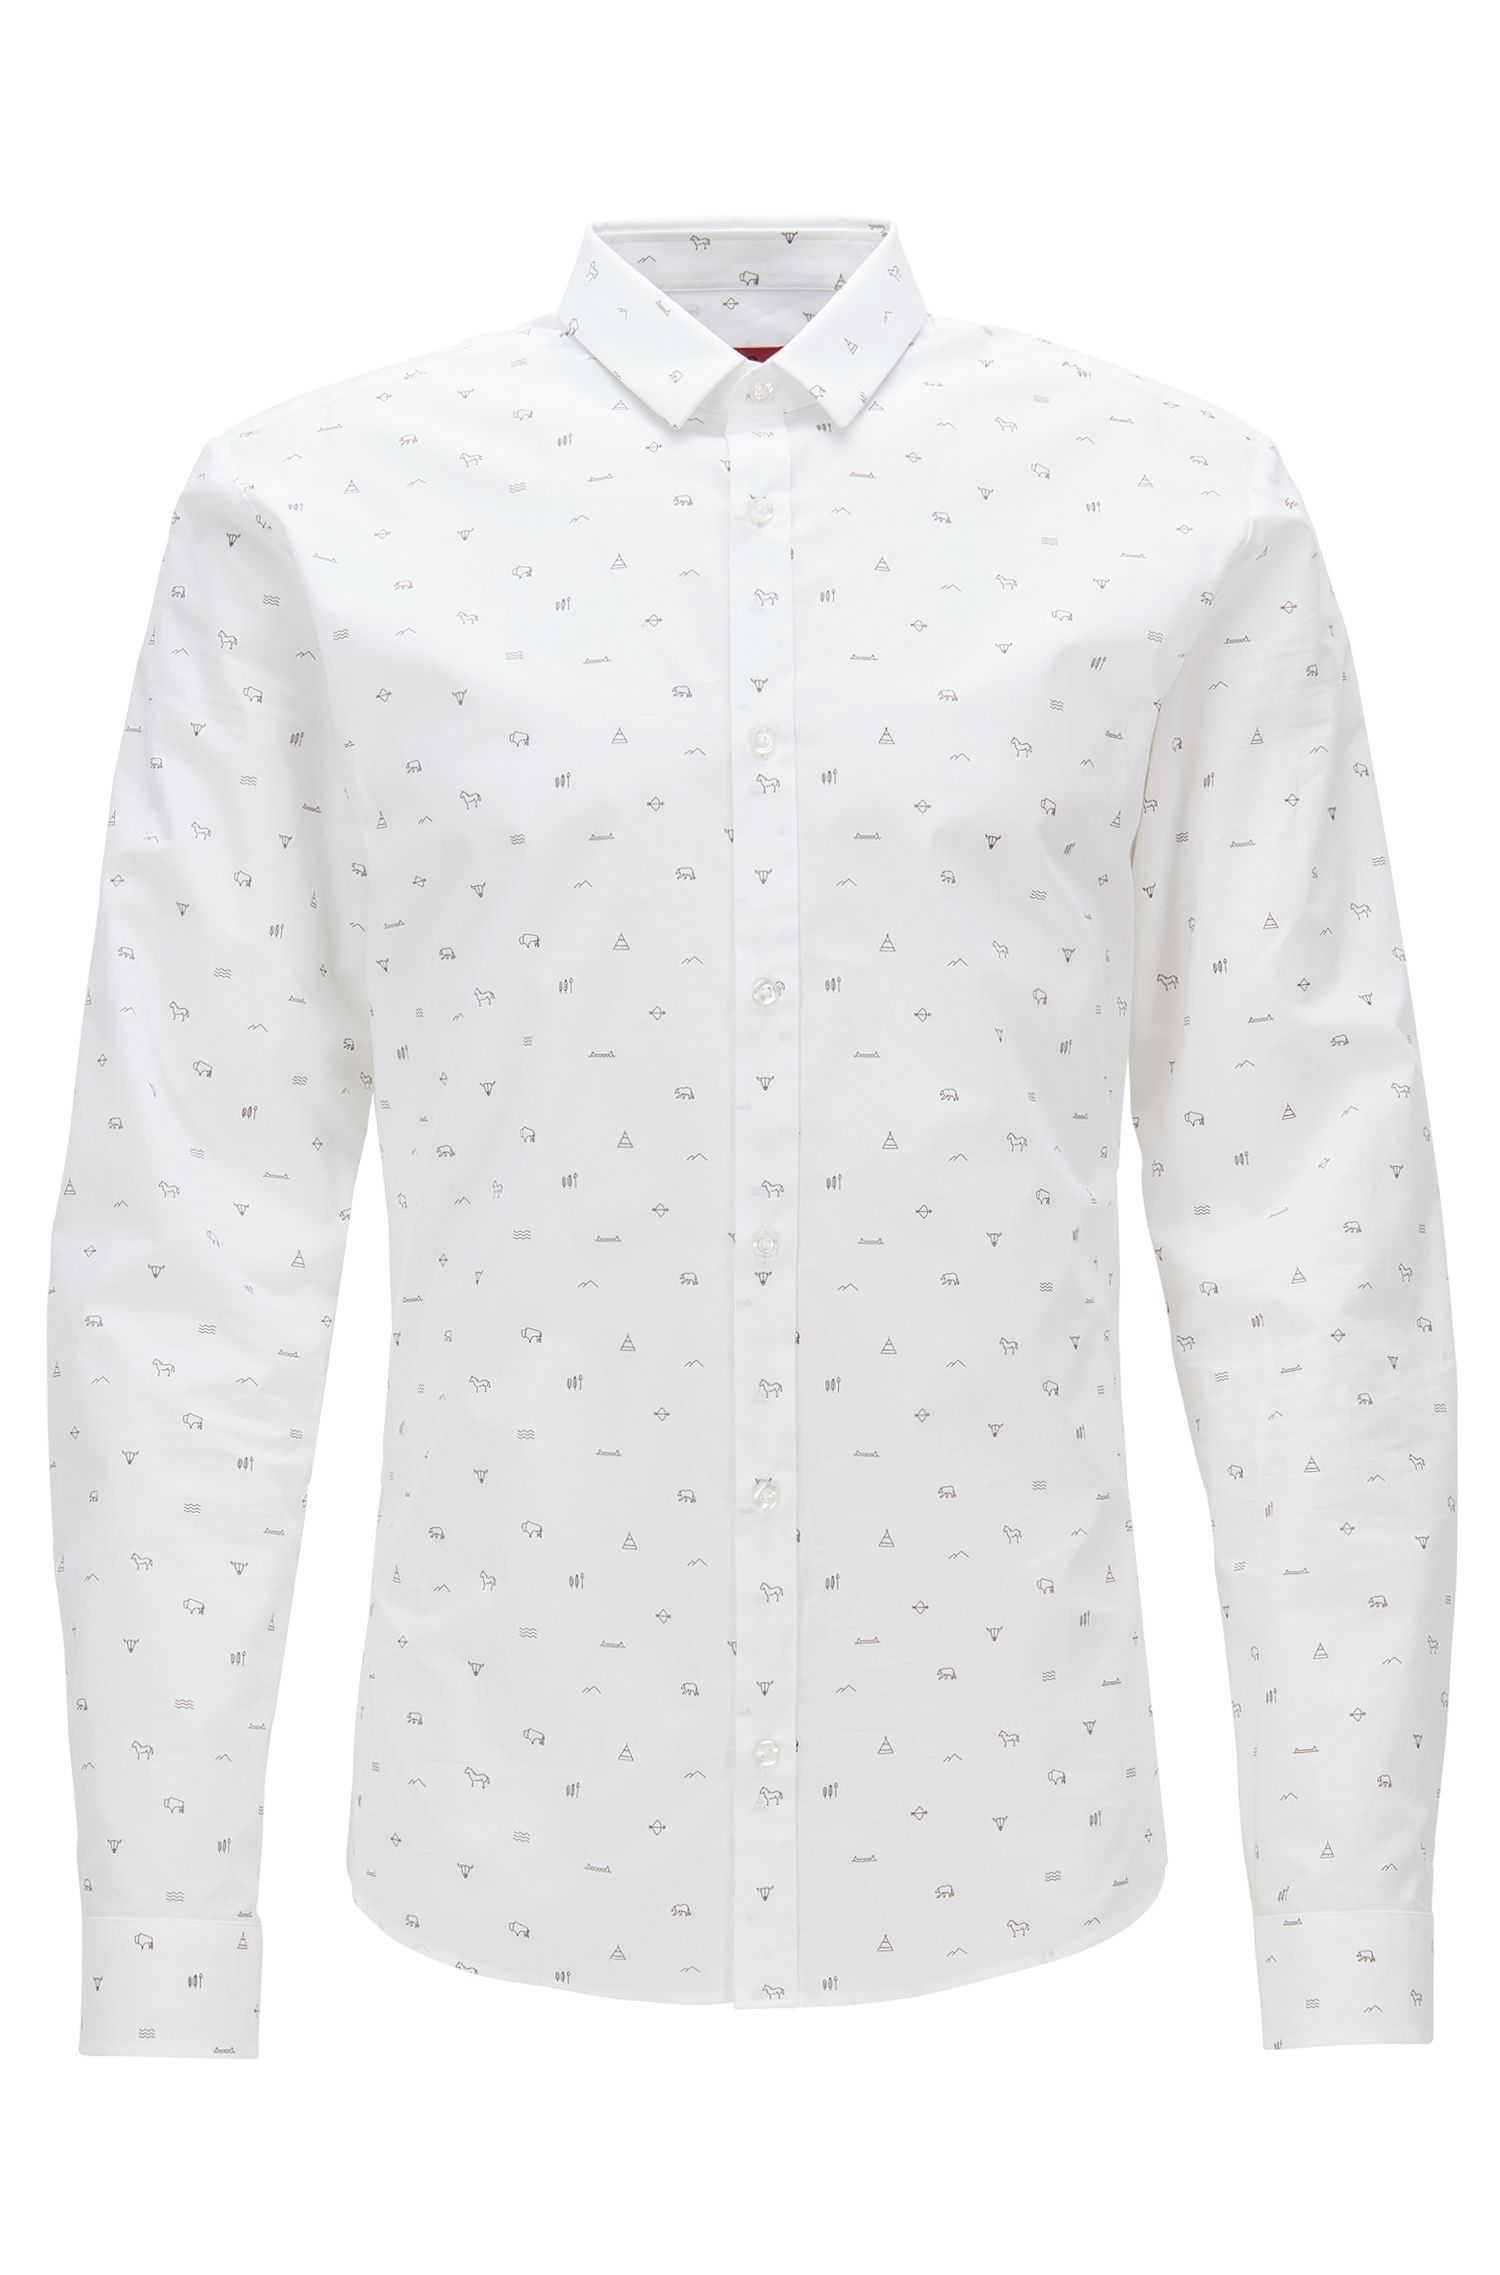 'Ero' | Extra Slim Fit, Patterned Cotton Button Down Shirt